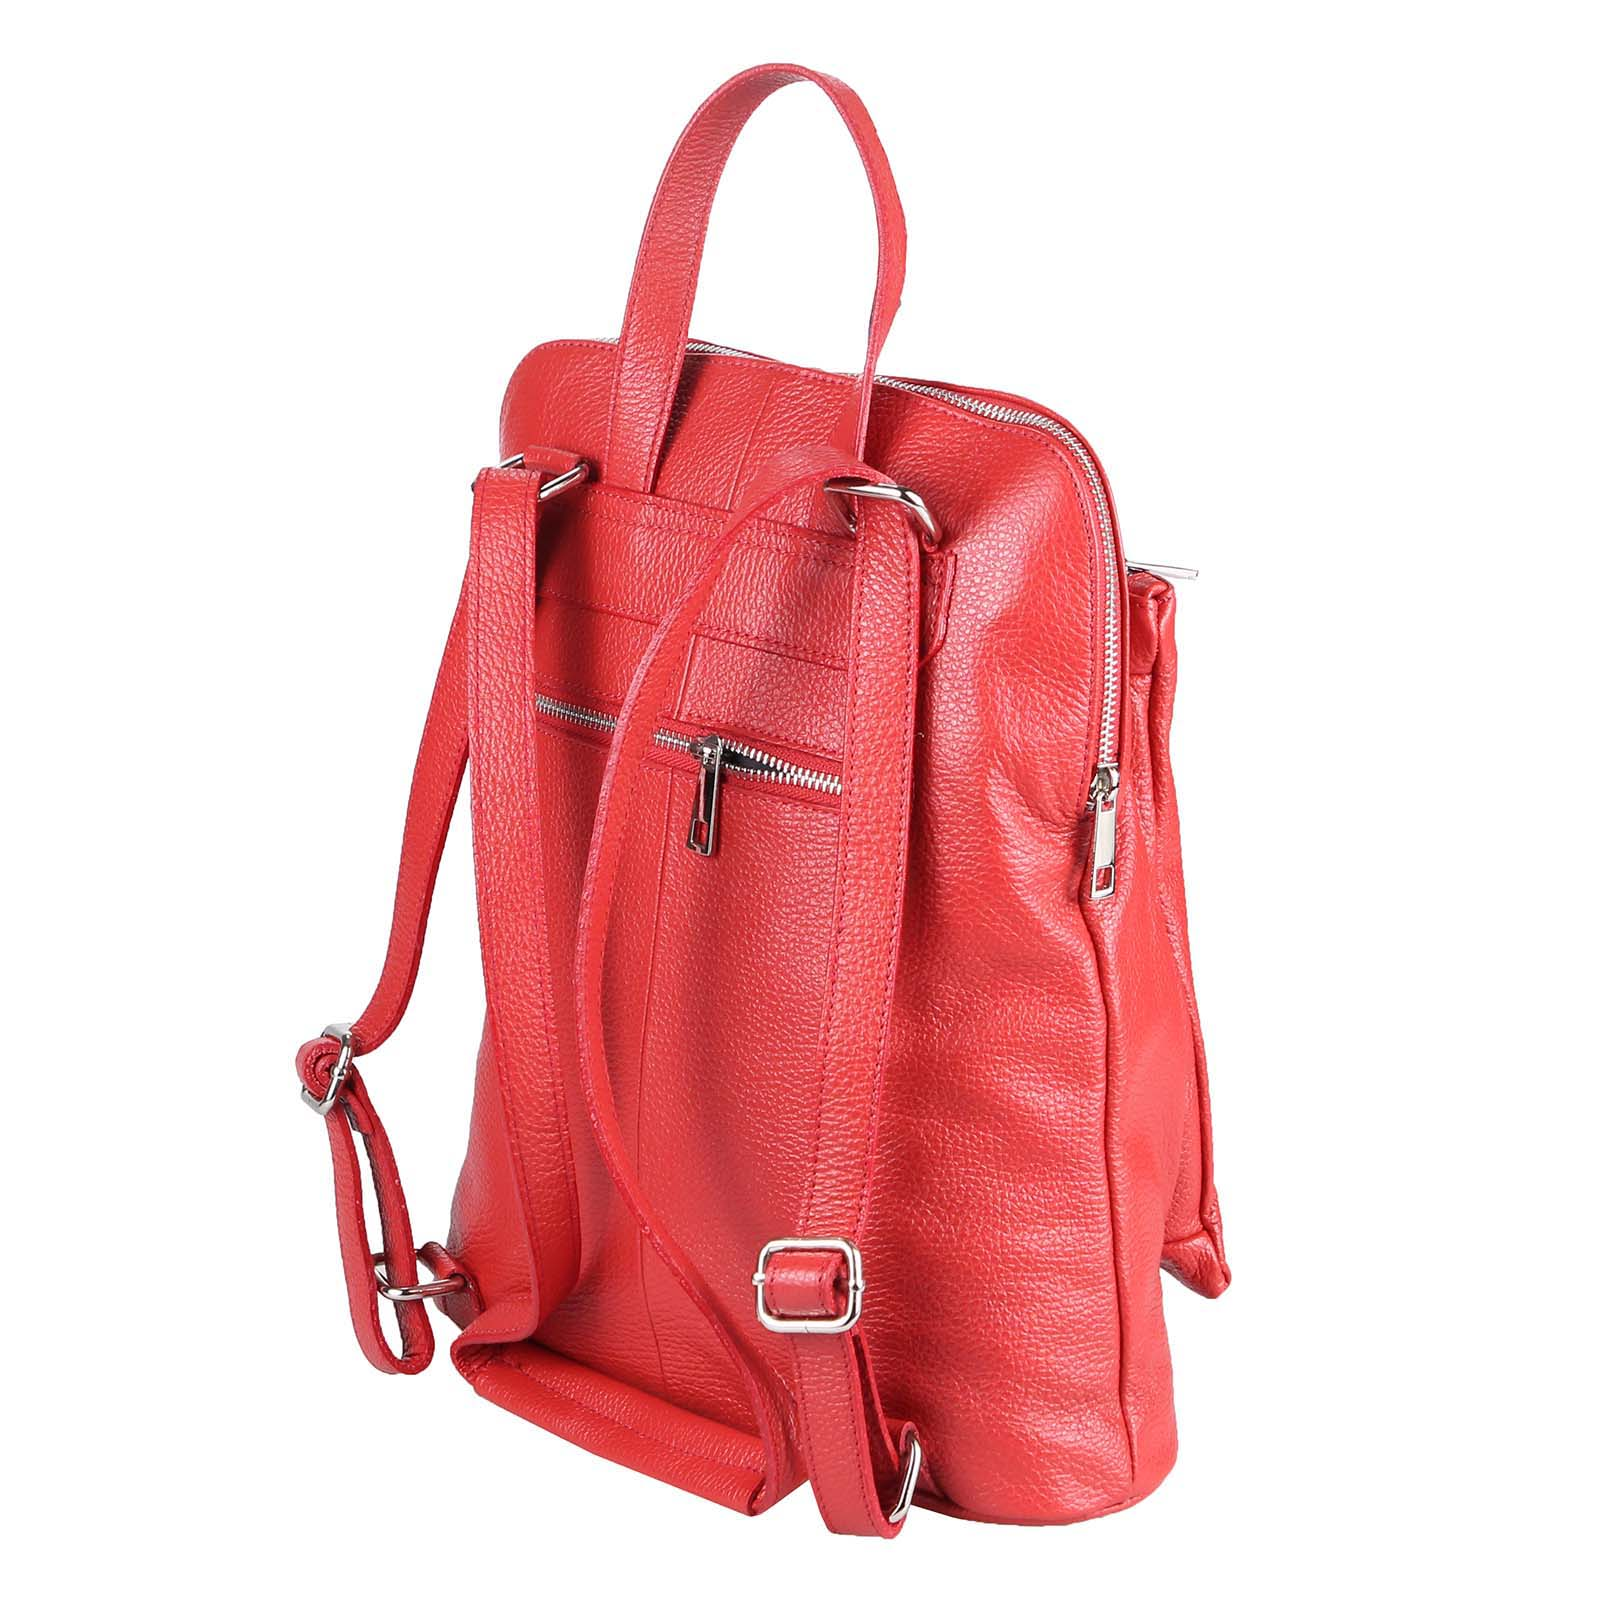 ITALy-DAMEN-LEDER-Reise-RUCKSACK-SchulterTasche-Shopper-Backpack-Ledertasche-BAG Indexbild 64